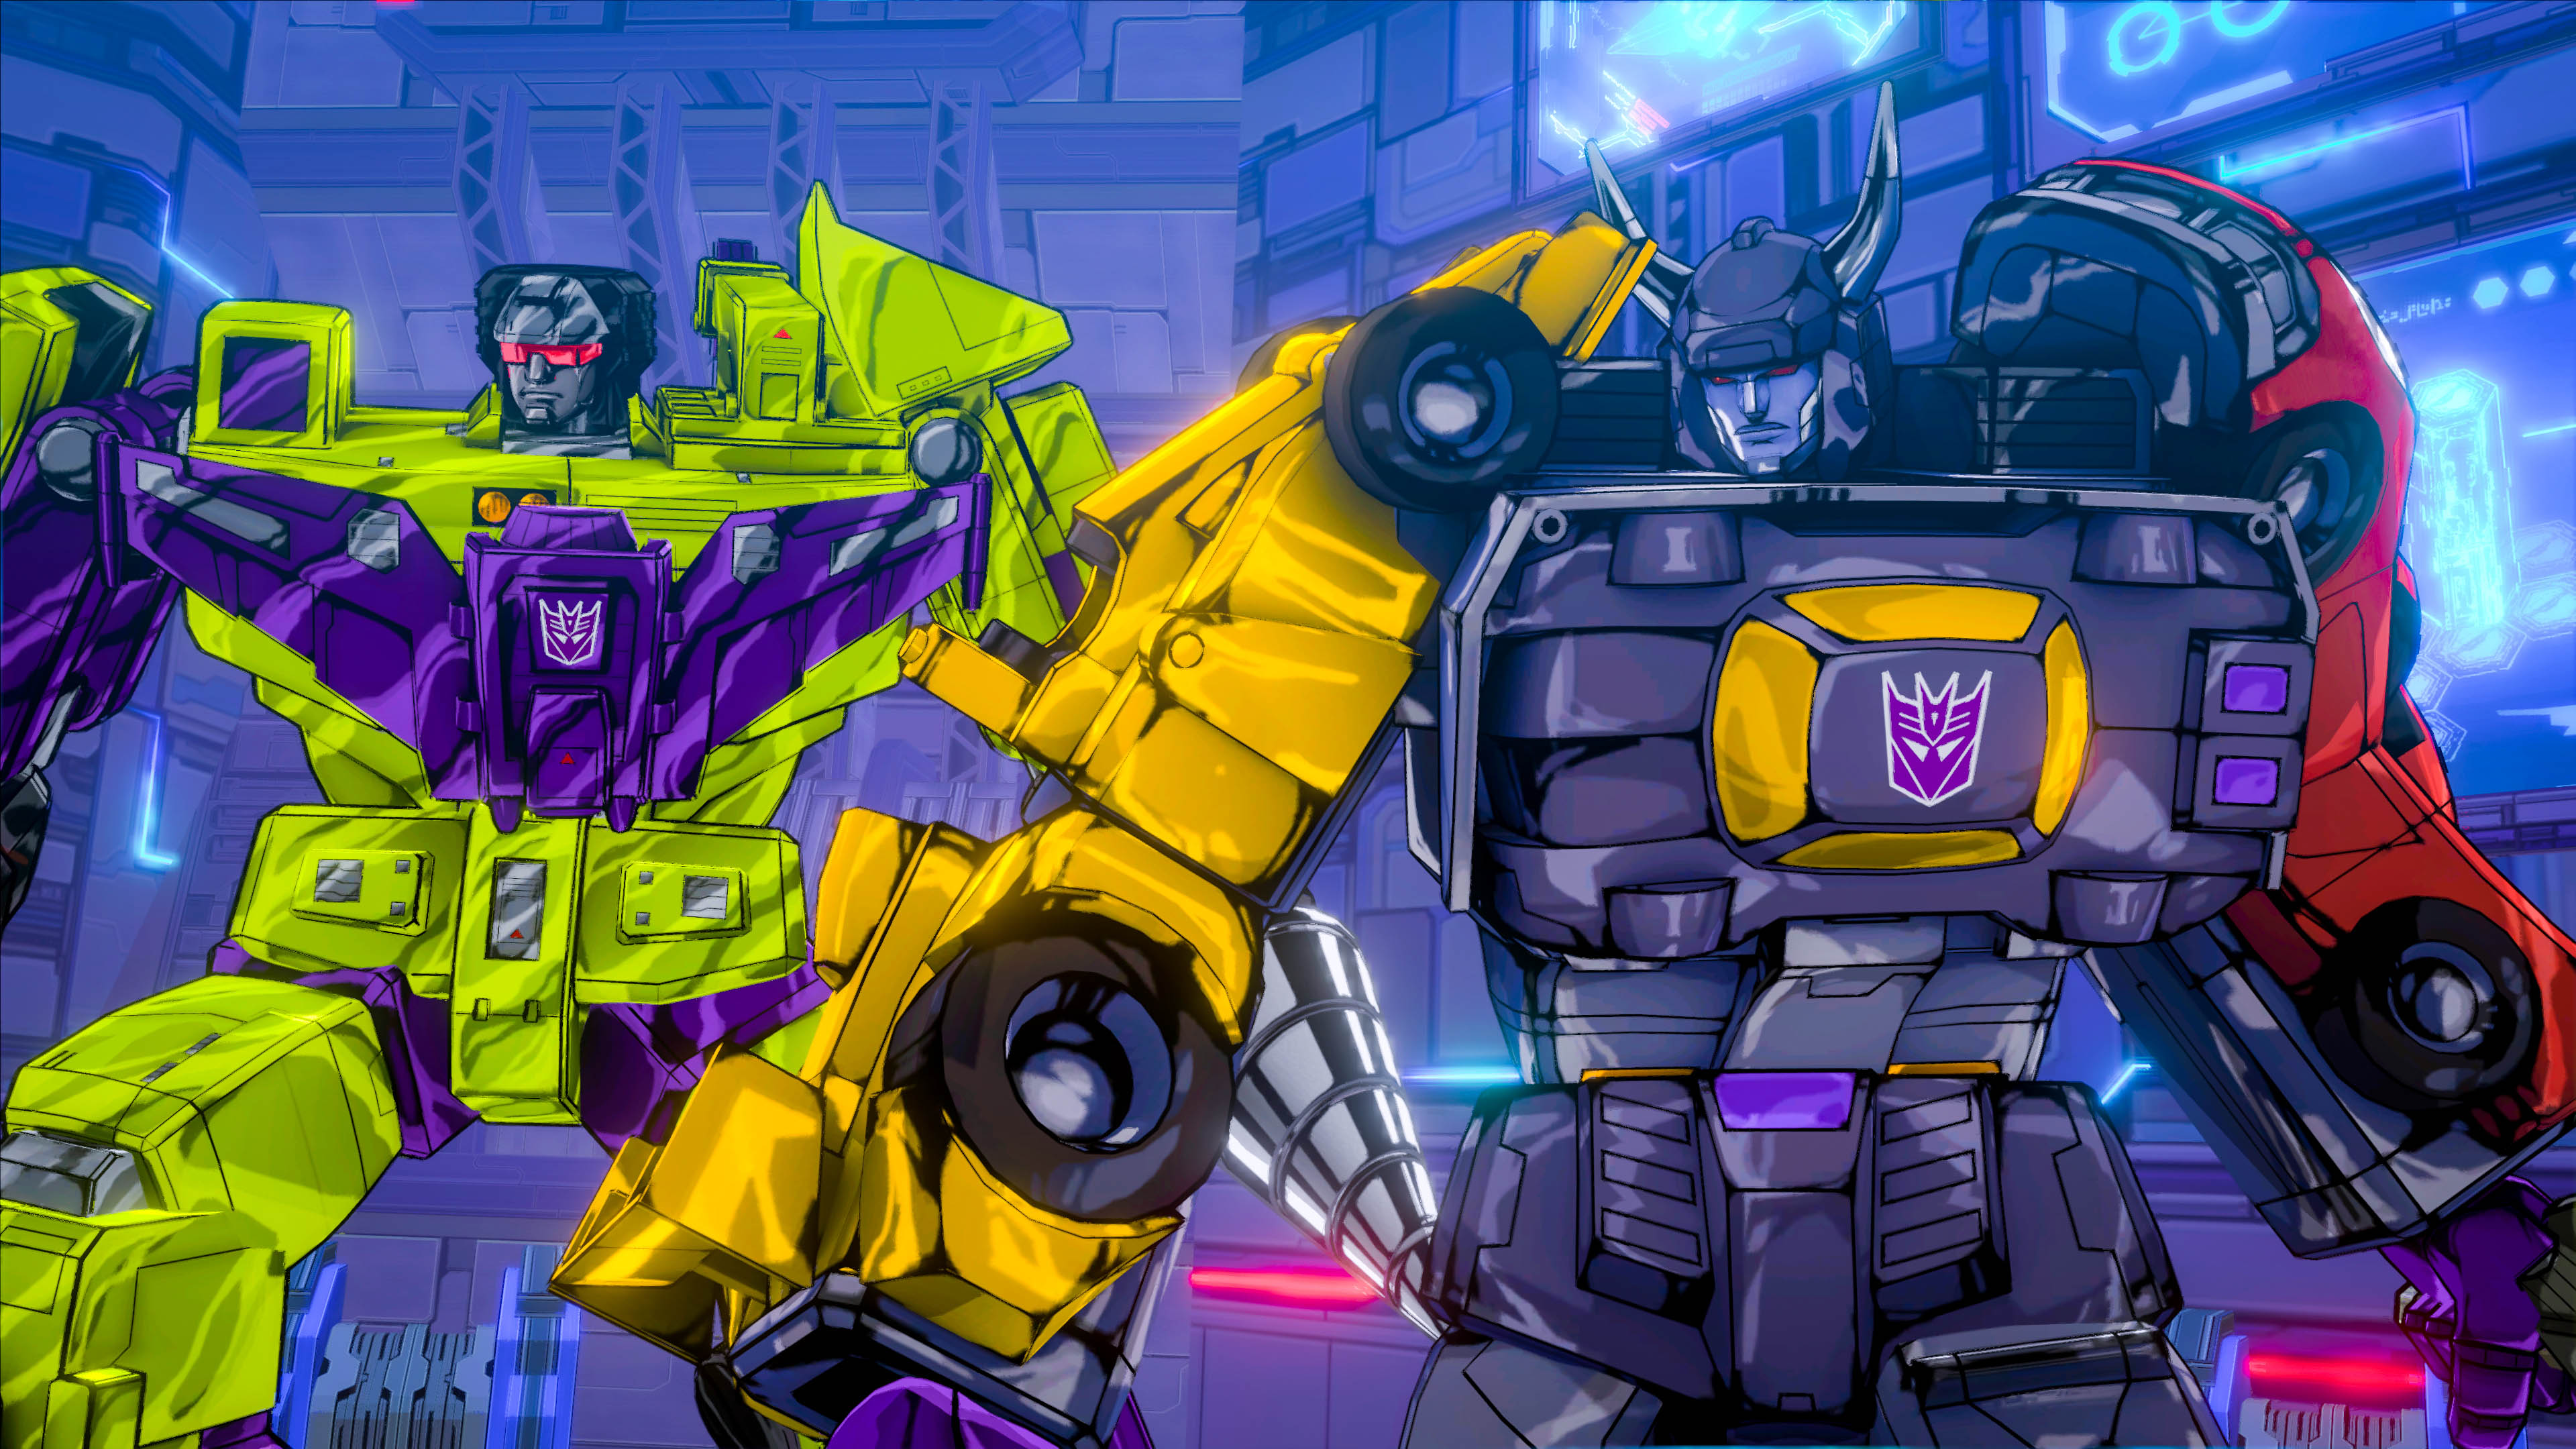 Touhou Fall Wallpaper Transformers Devastation The Tfw2005 Review